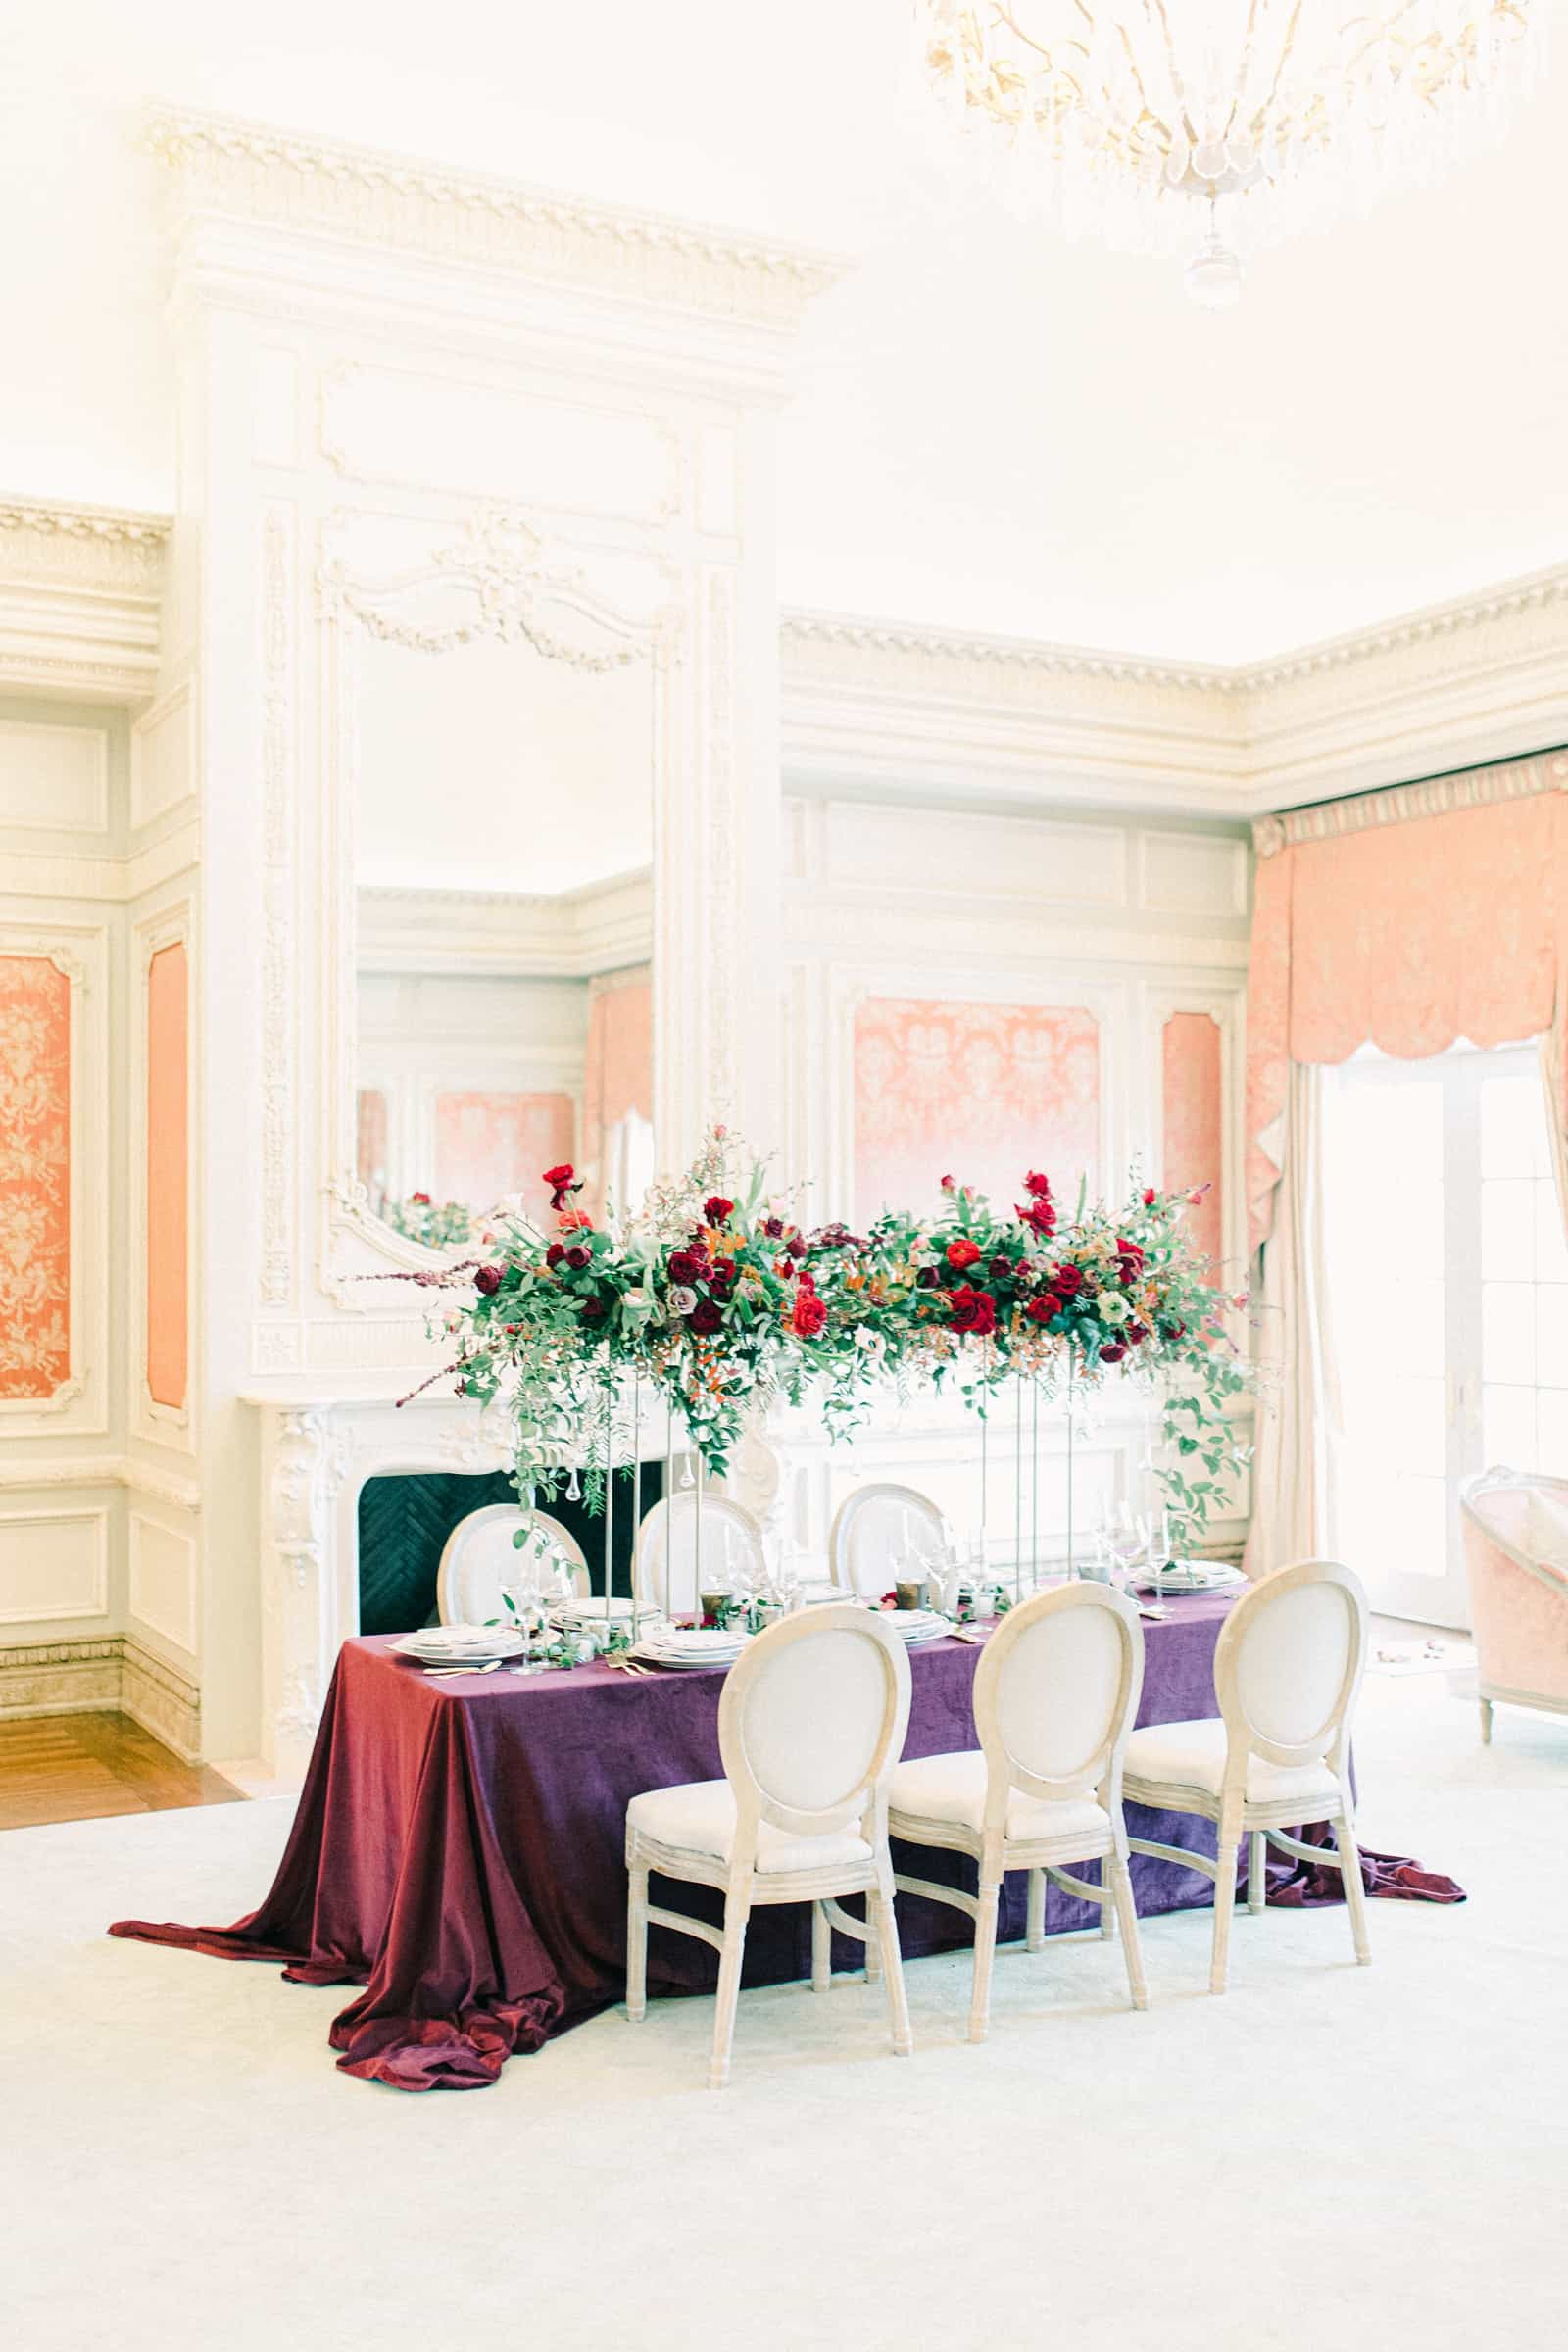 Wedding table with floral arch, maroon tablecloth in European style mansion